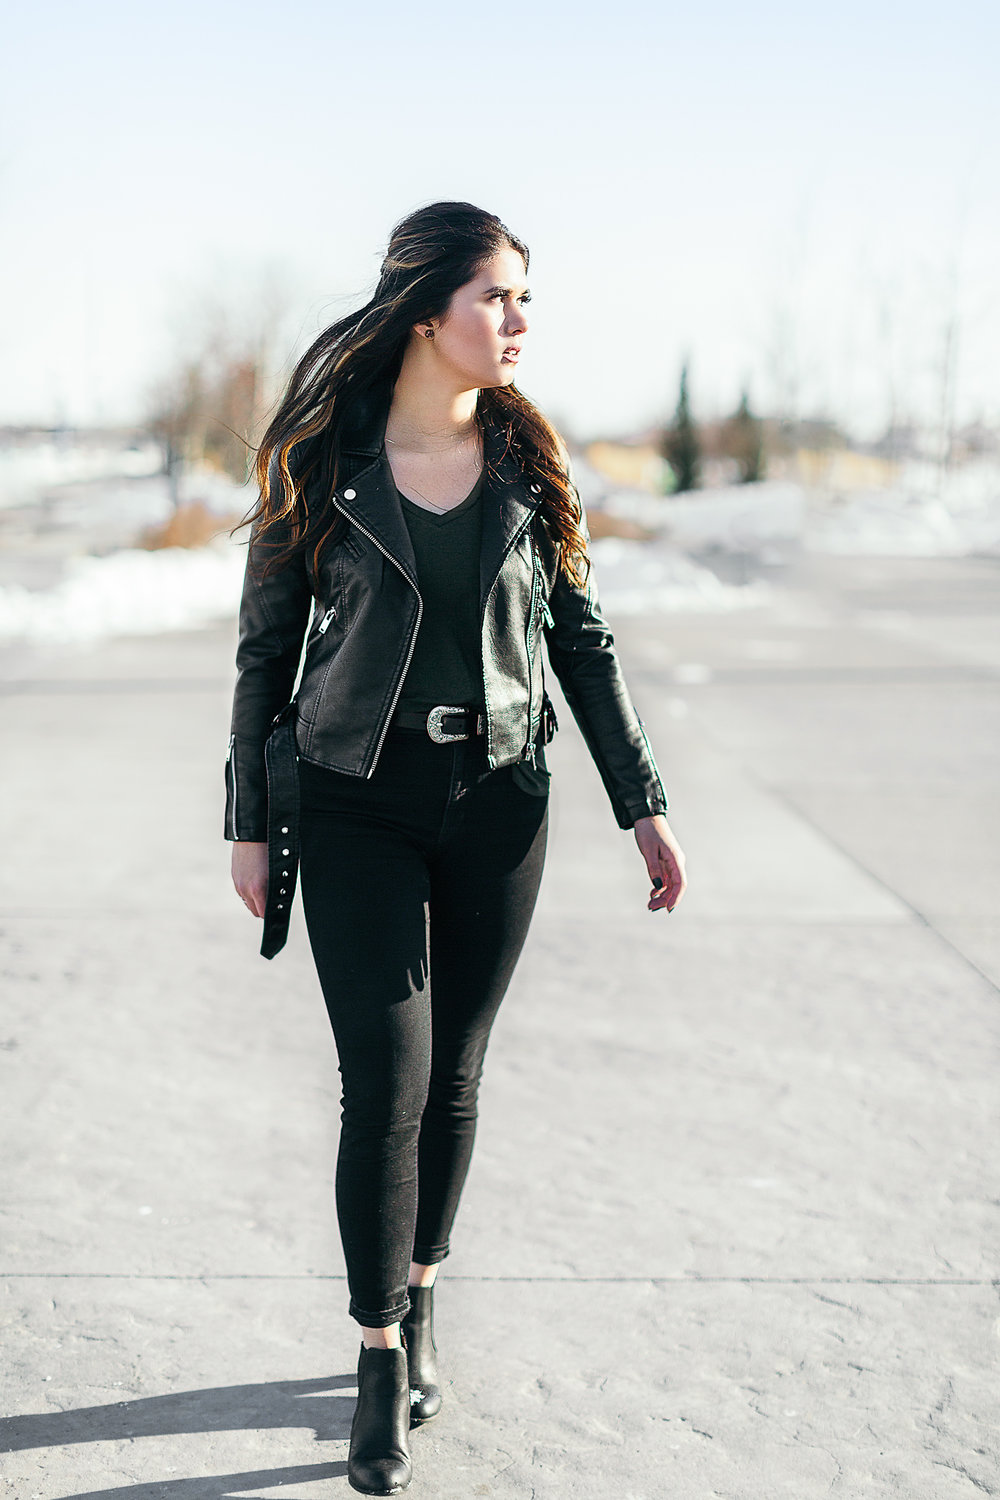 Vegan Faux-leather jacket from 27 Boutique, East Village, Calgary, Alberta